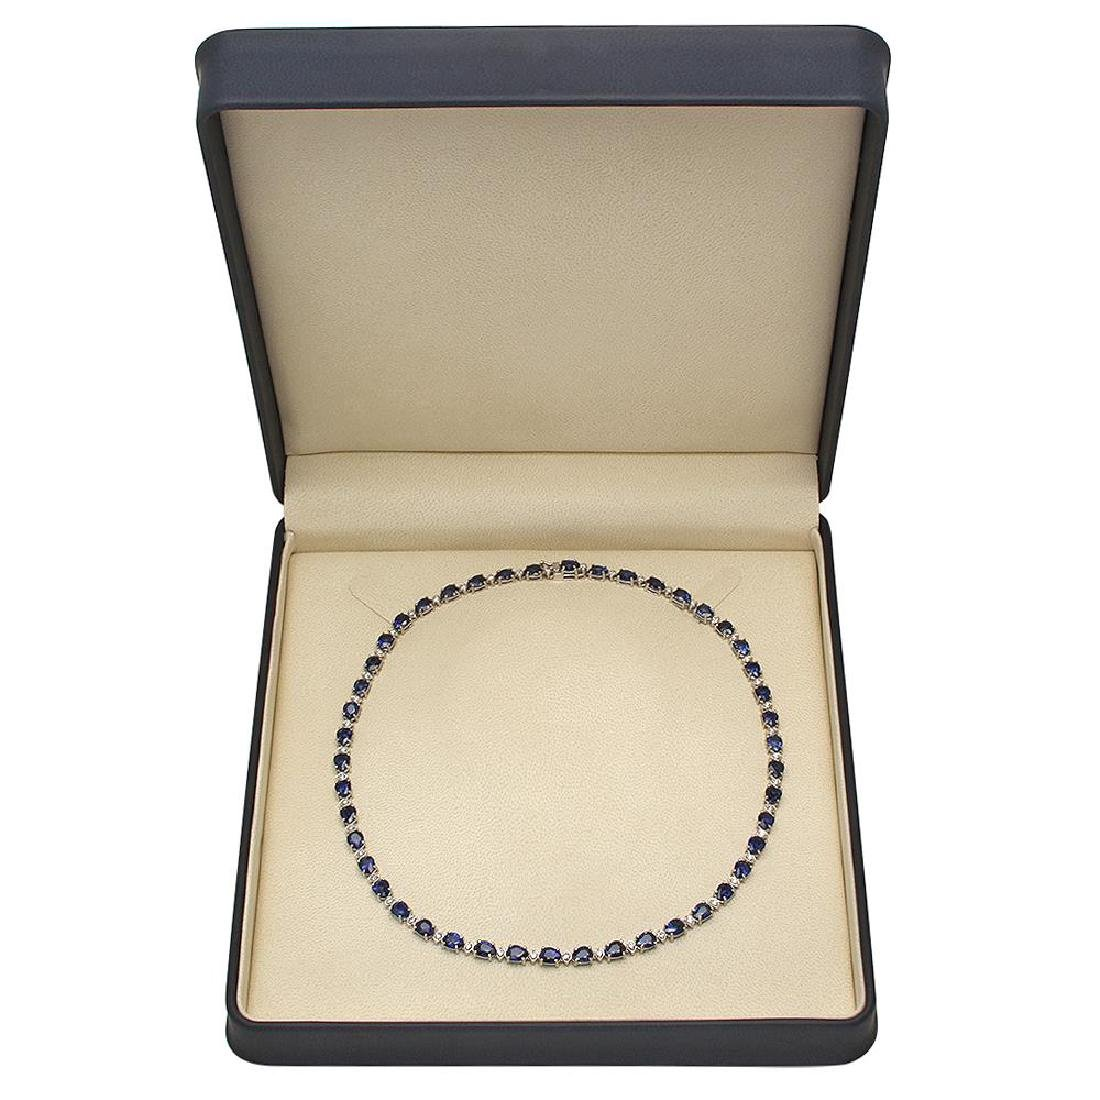 14K Gold 31.39ct Sapphire 1.52ct Diamond Necklace - 4